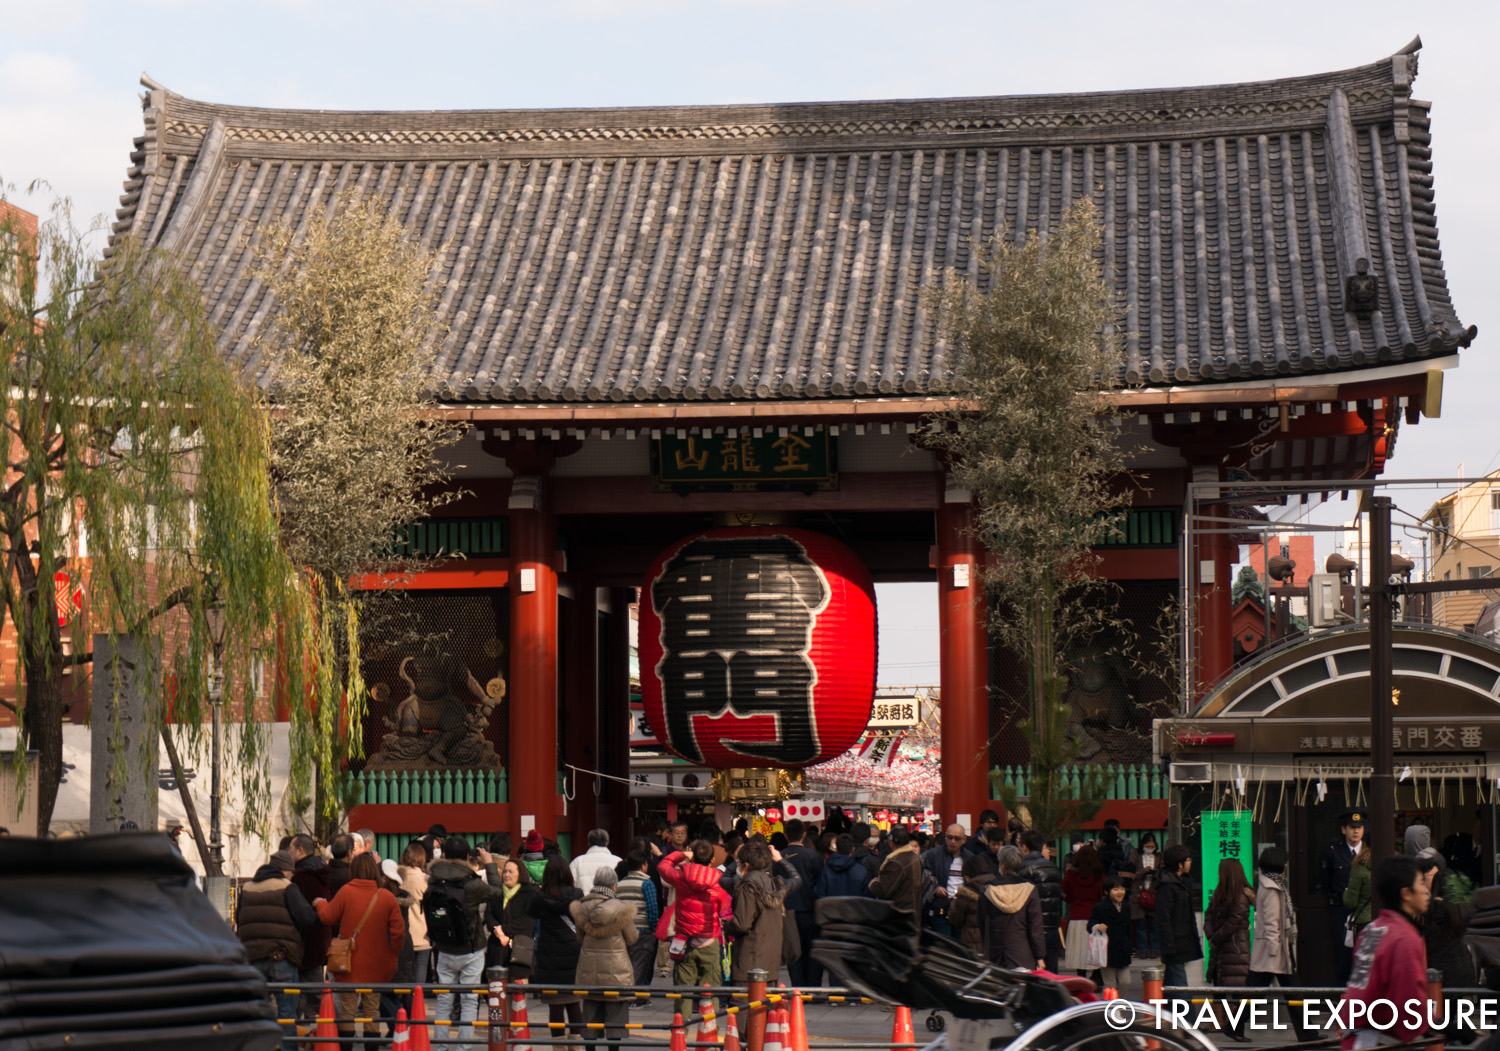 The Kaminarimon Gate leads to the temple through a busy street market. It features a massive paper lantern painted in such a way to suggest thunderclouds and lightning.